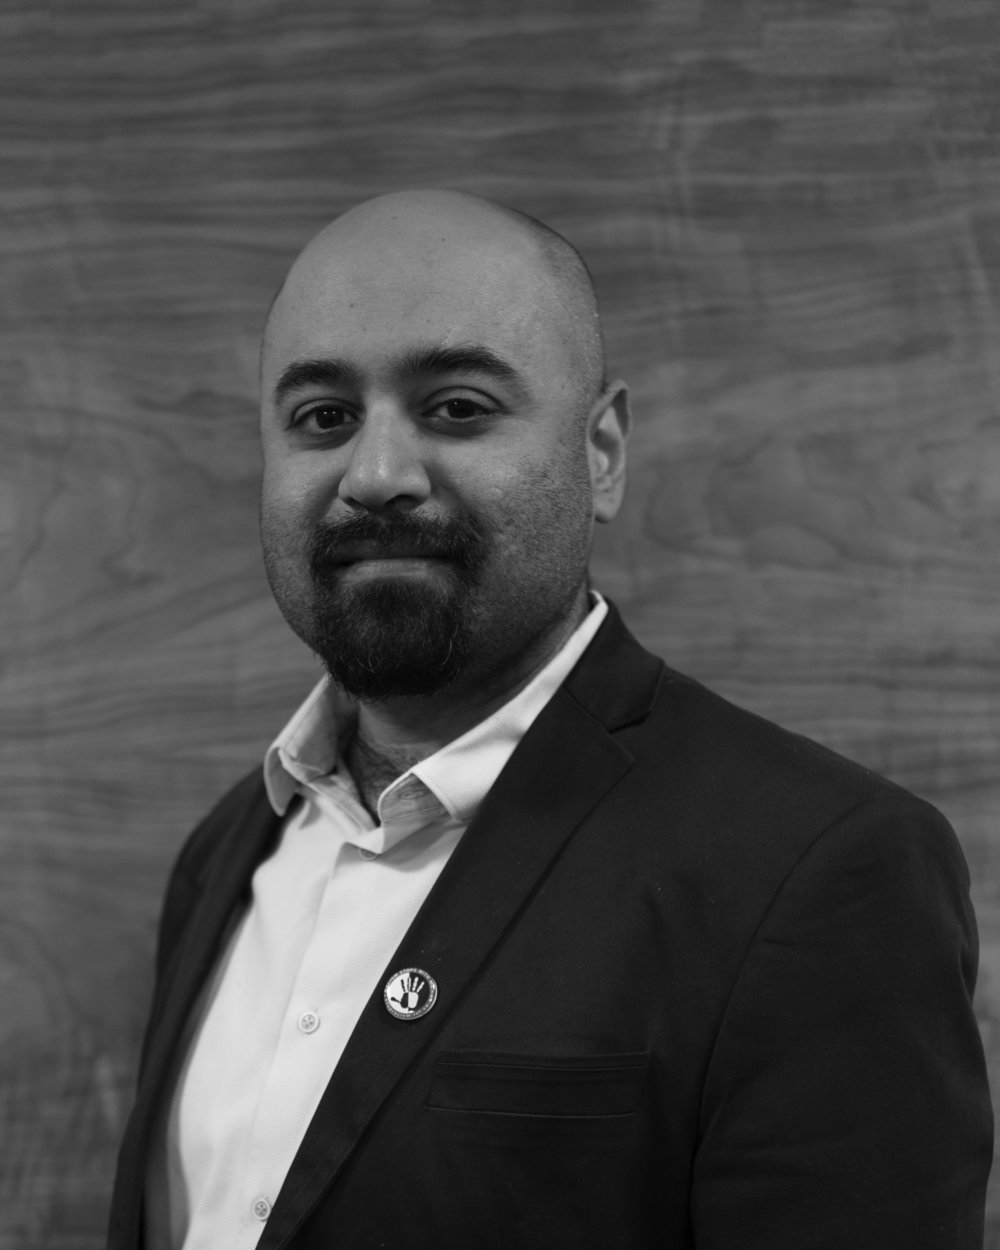 Amit Makan   Amit is currently the Chief Executive Officer of the African News Agency Pictures (ANA Pictures), and Independent Media Solutions-Politics, Opinion and Development (IMS-POD) specialized content business unit.       Read more...